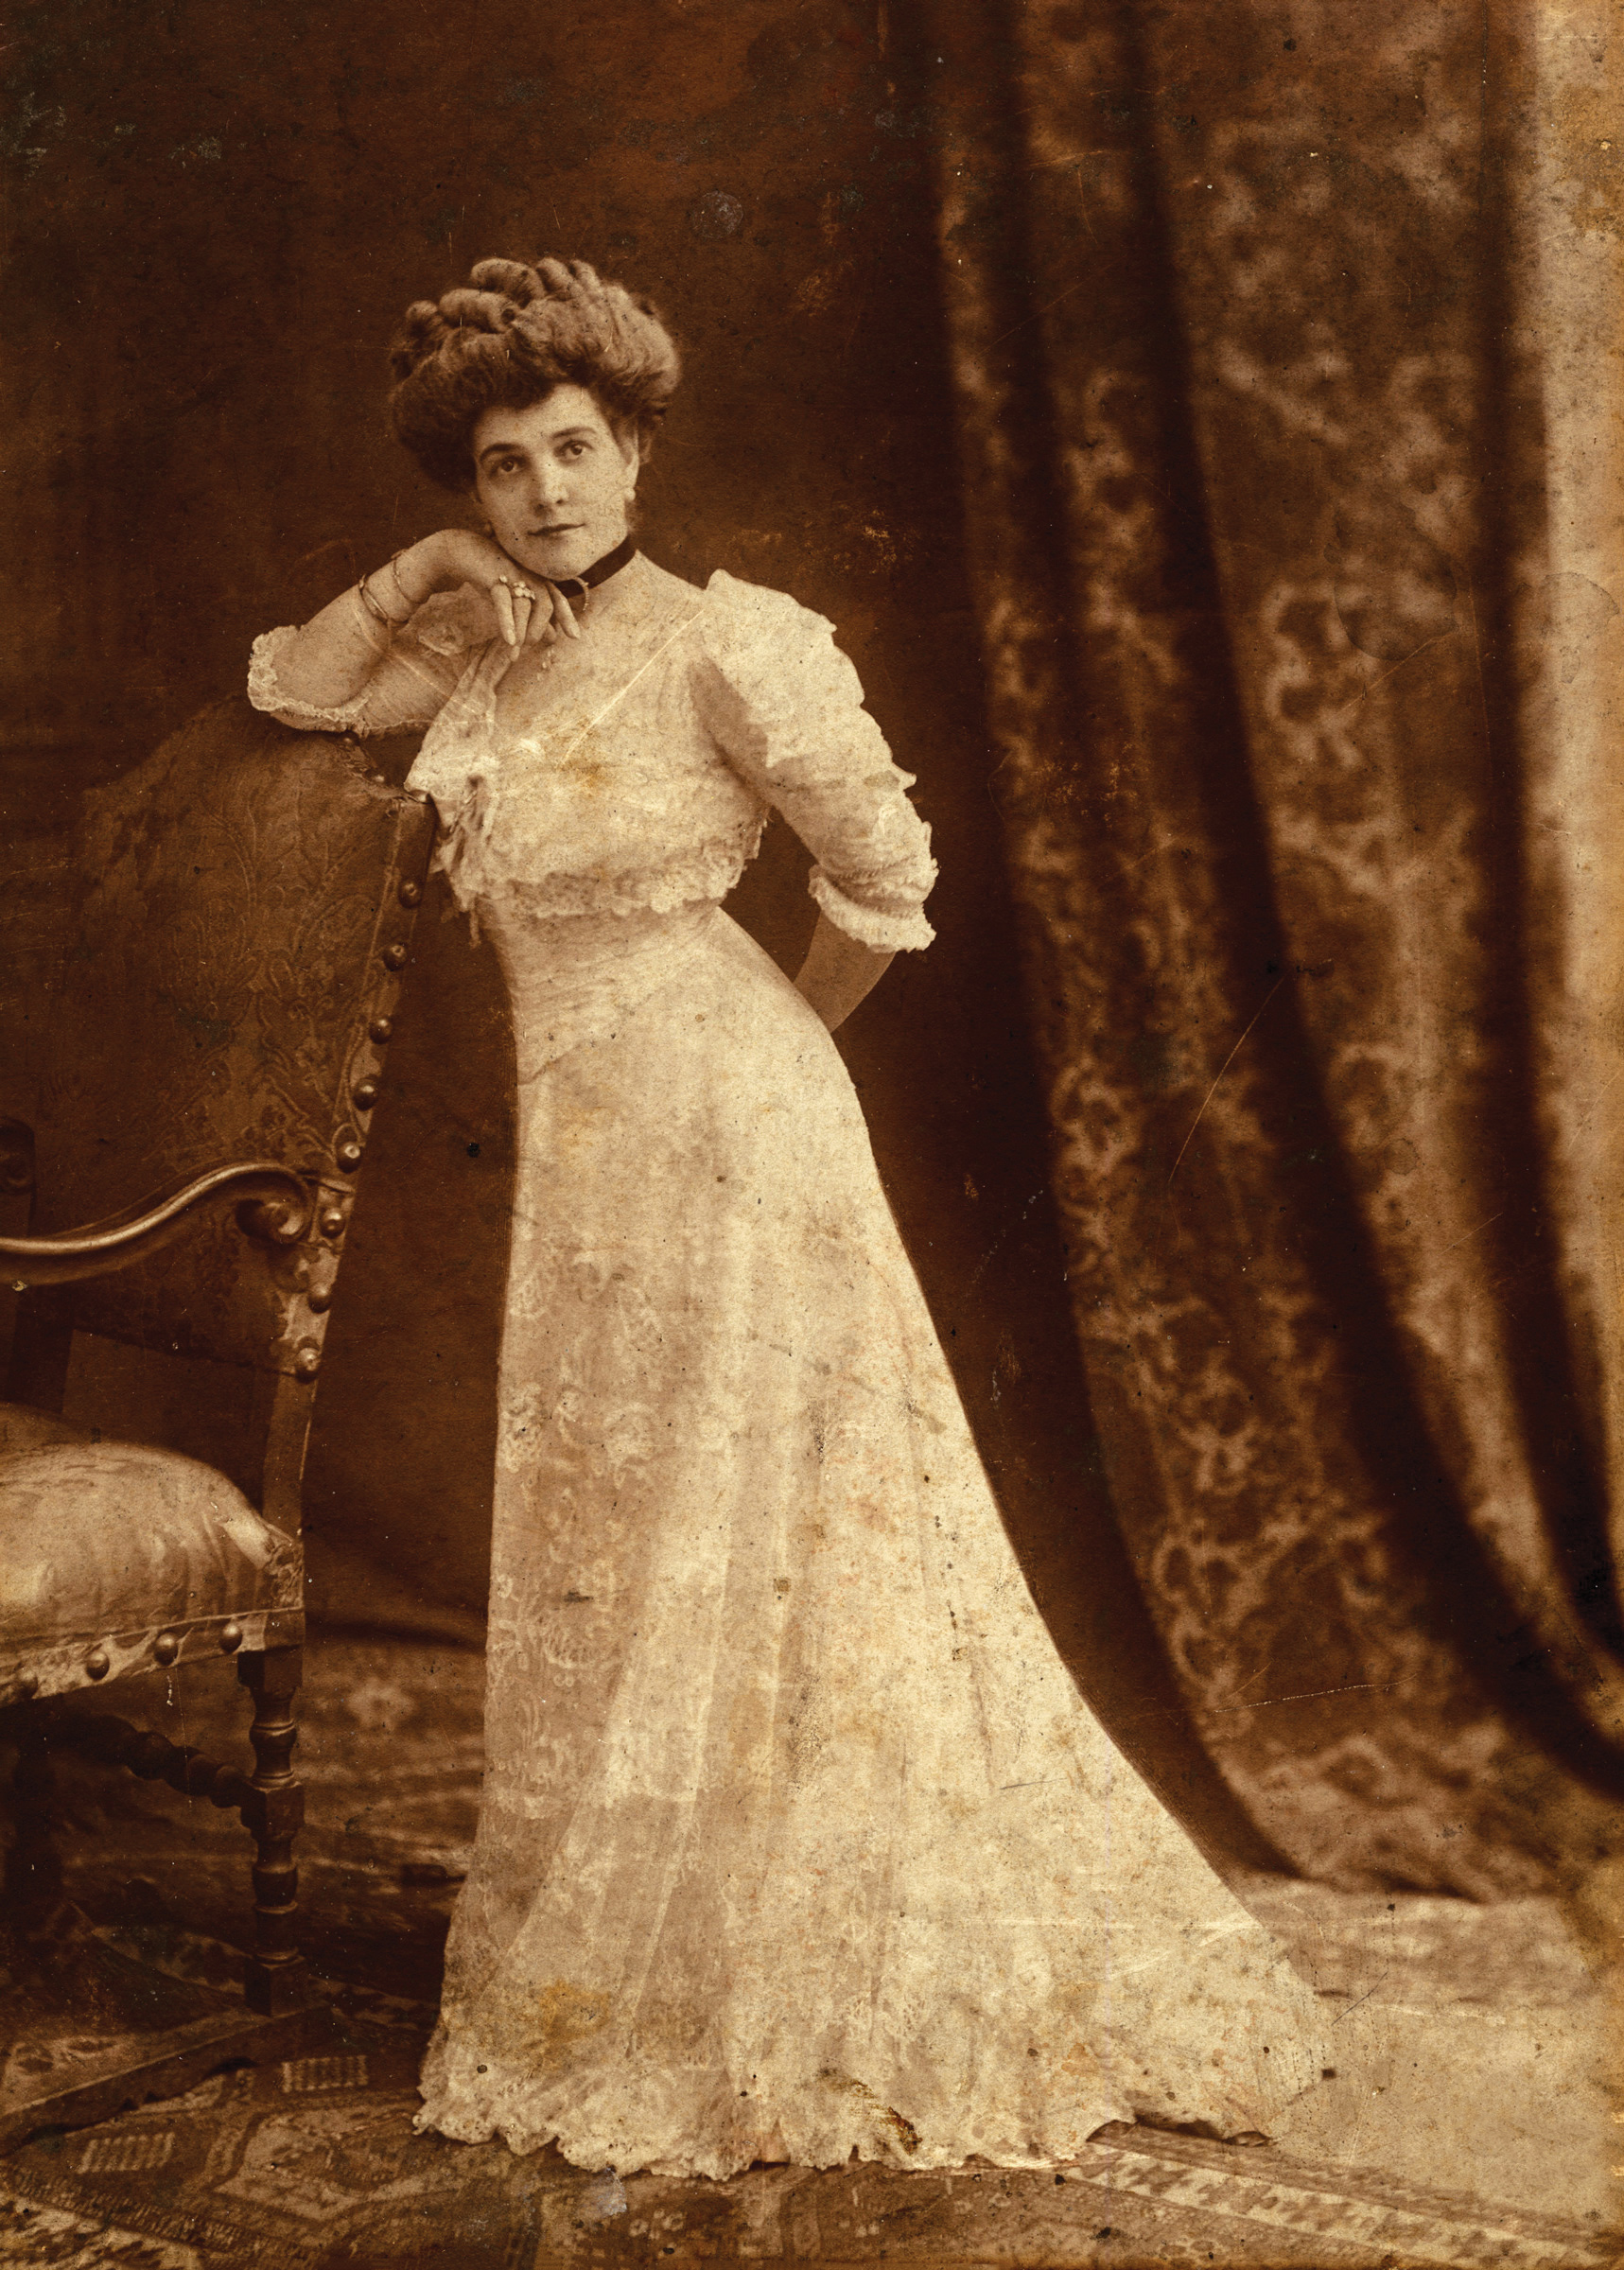 Mable Ringling, shortly after her wedding in 1905. Photography by John and Mable Ringling Museum of Art